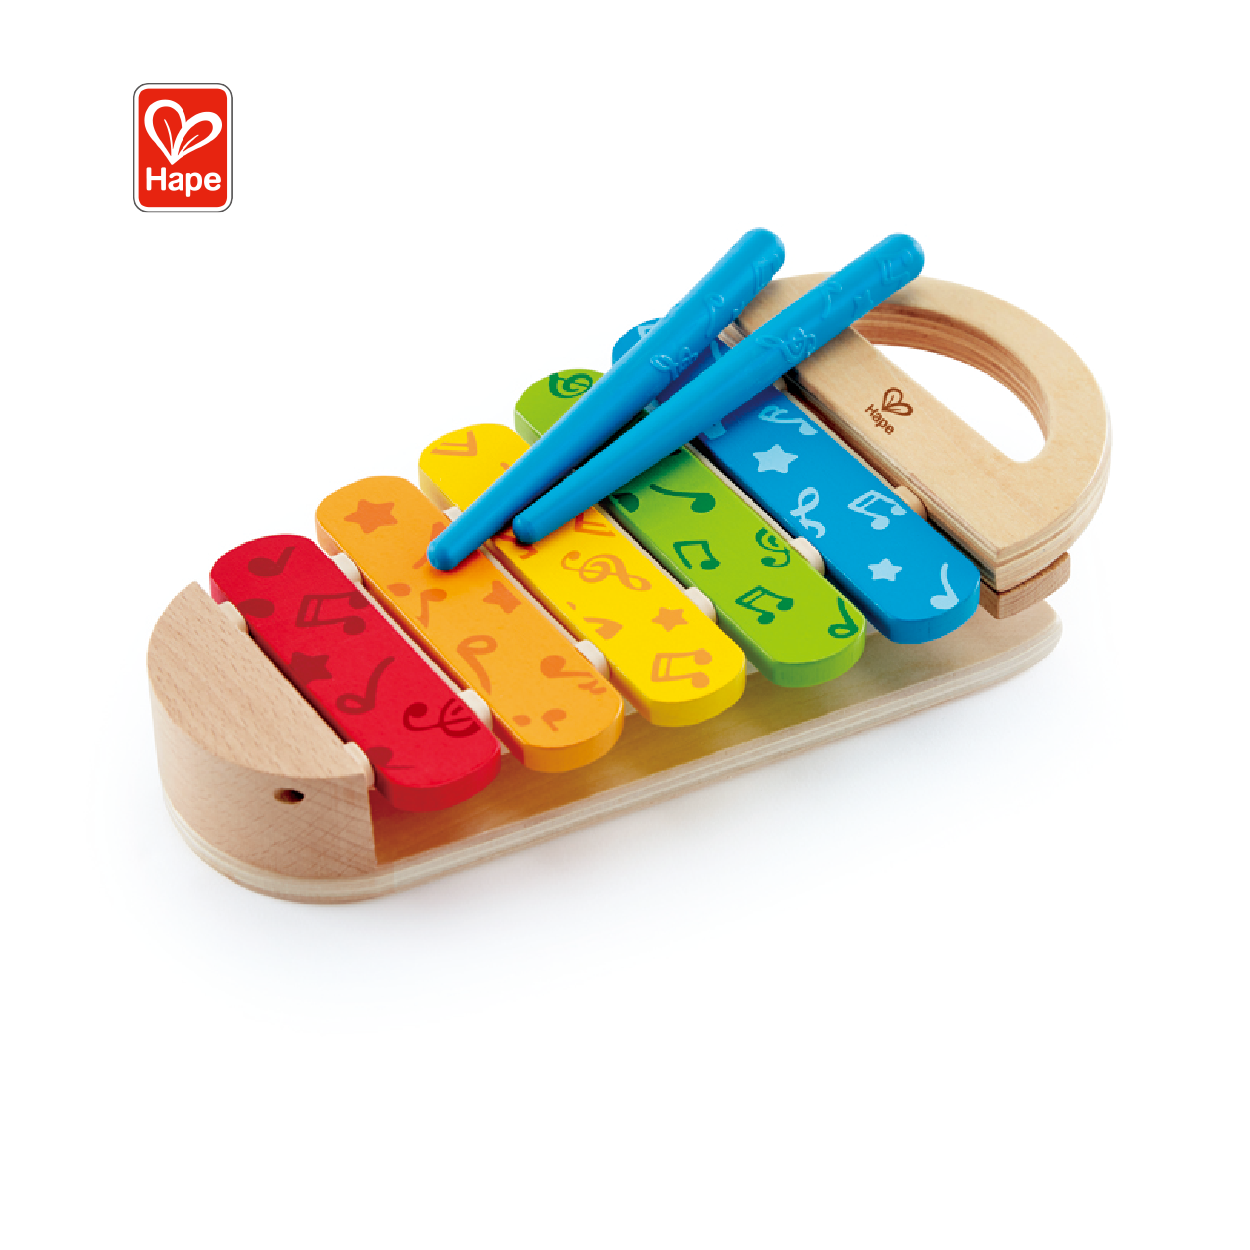 Hape Kids Play Rainbow Xylophone Music Wooden Toddler Toy